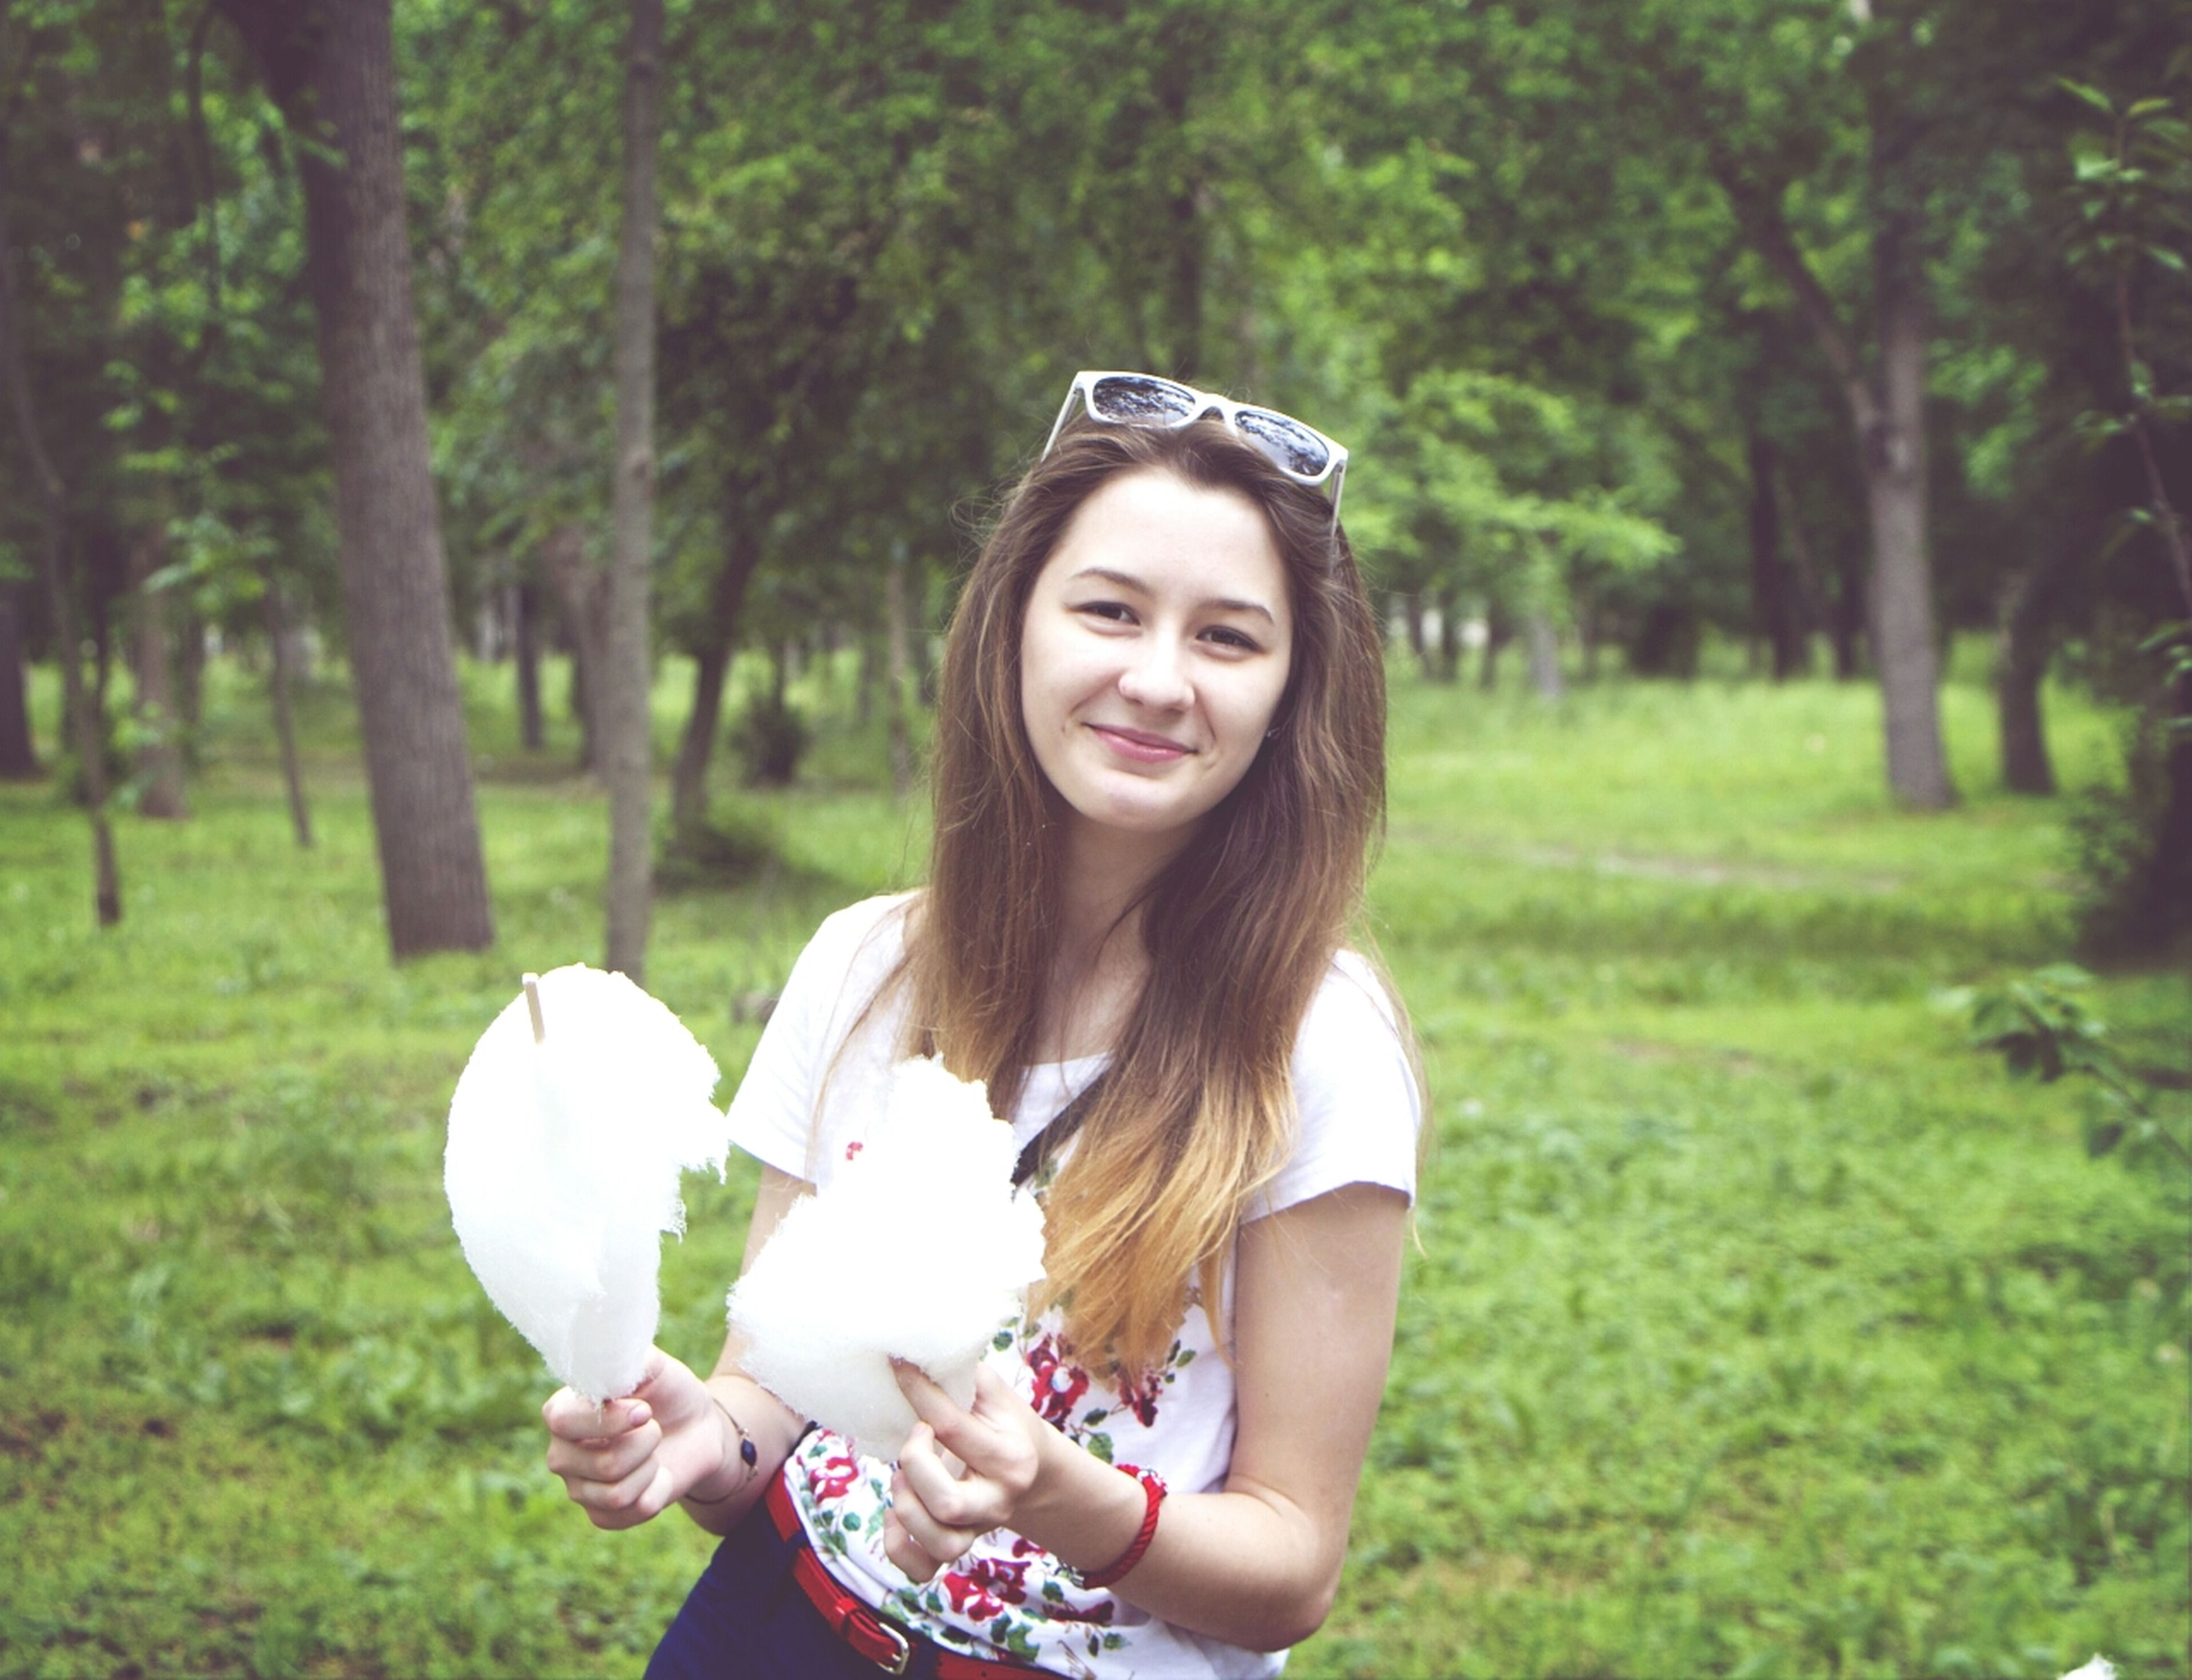 person, young adult, young women, lifestyles, leisure activity, focus on foreground, portrait, looking at camera, front view, flower, tree, smiling, long hair, casual clothing, happiness, standing, park - man made space